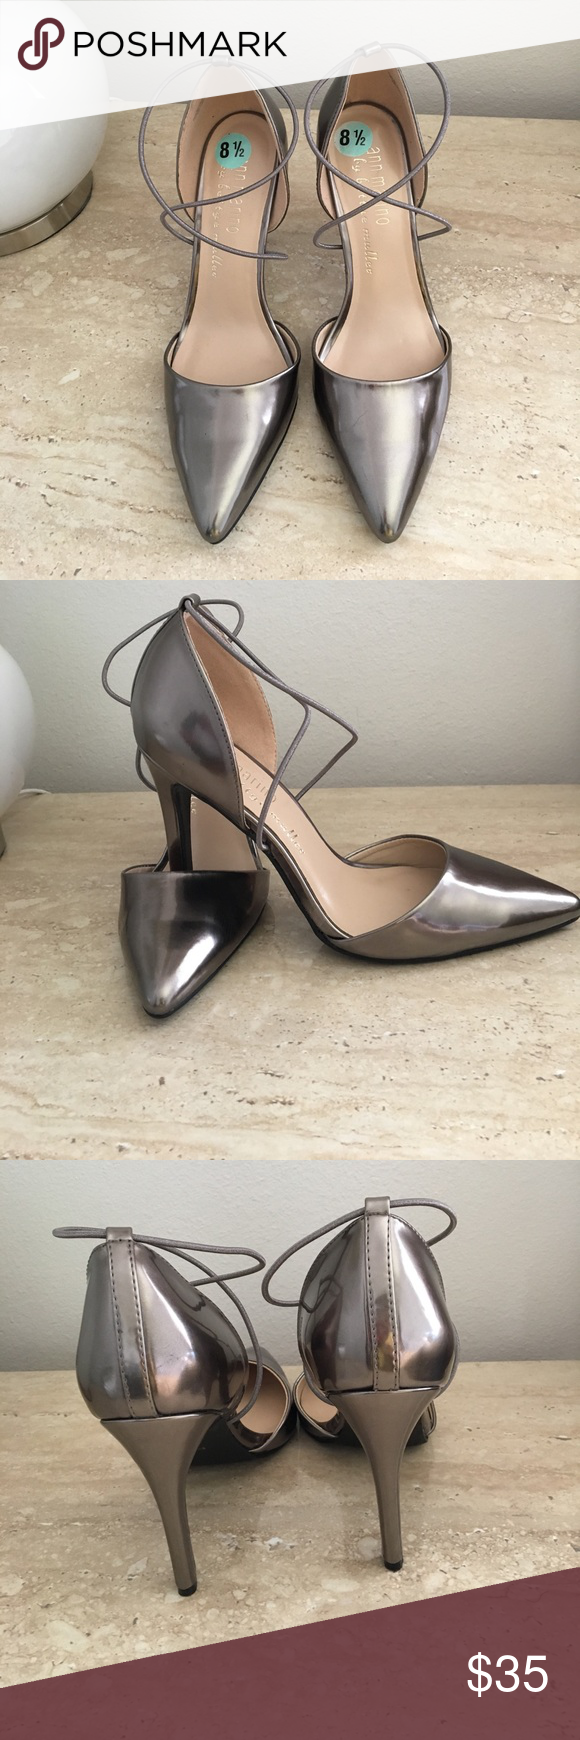 cb98ca3c407775 Ann Marino Silver shoes size 8.1 2 Ann Marino Silver shoes size 8.5. I  tried it once at the store but I never had a chance to wear it.